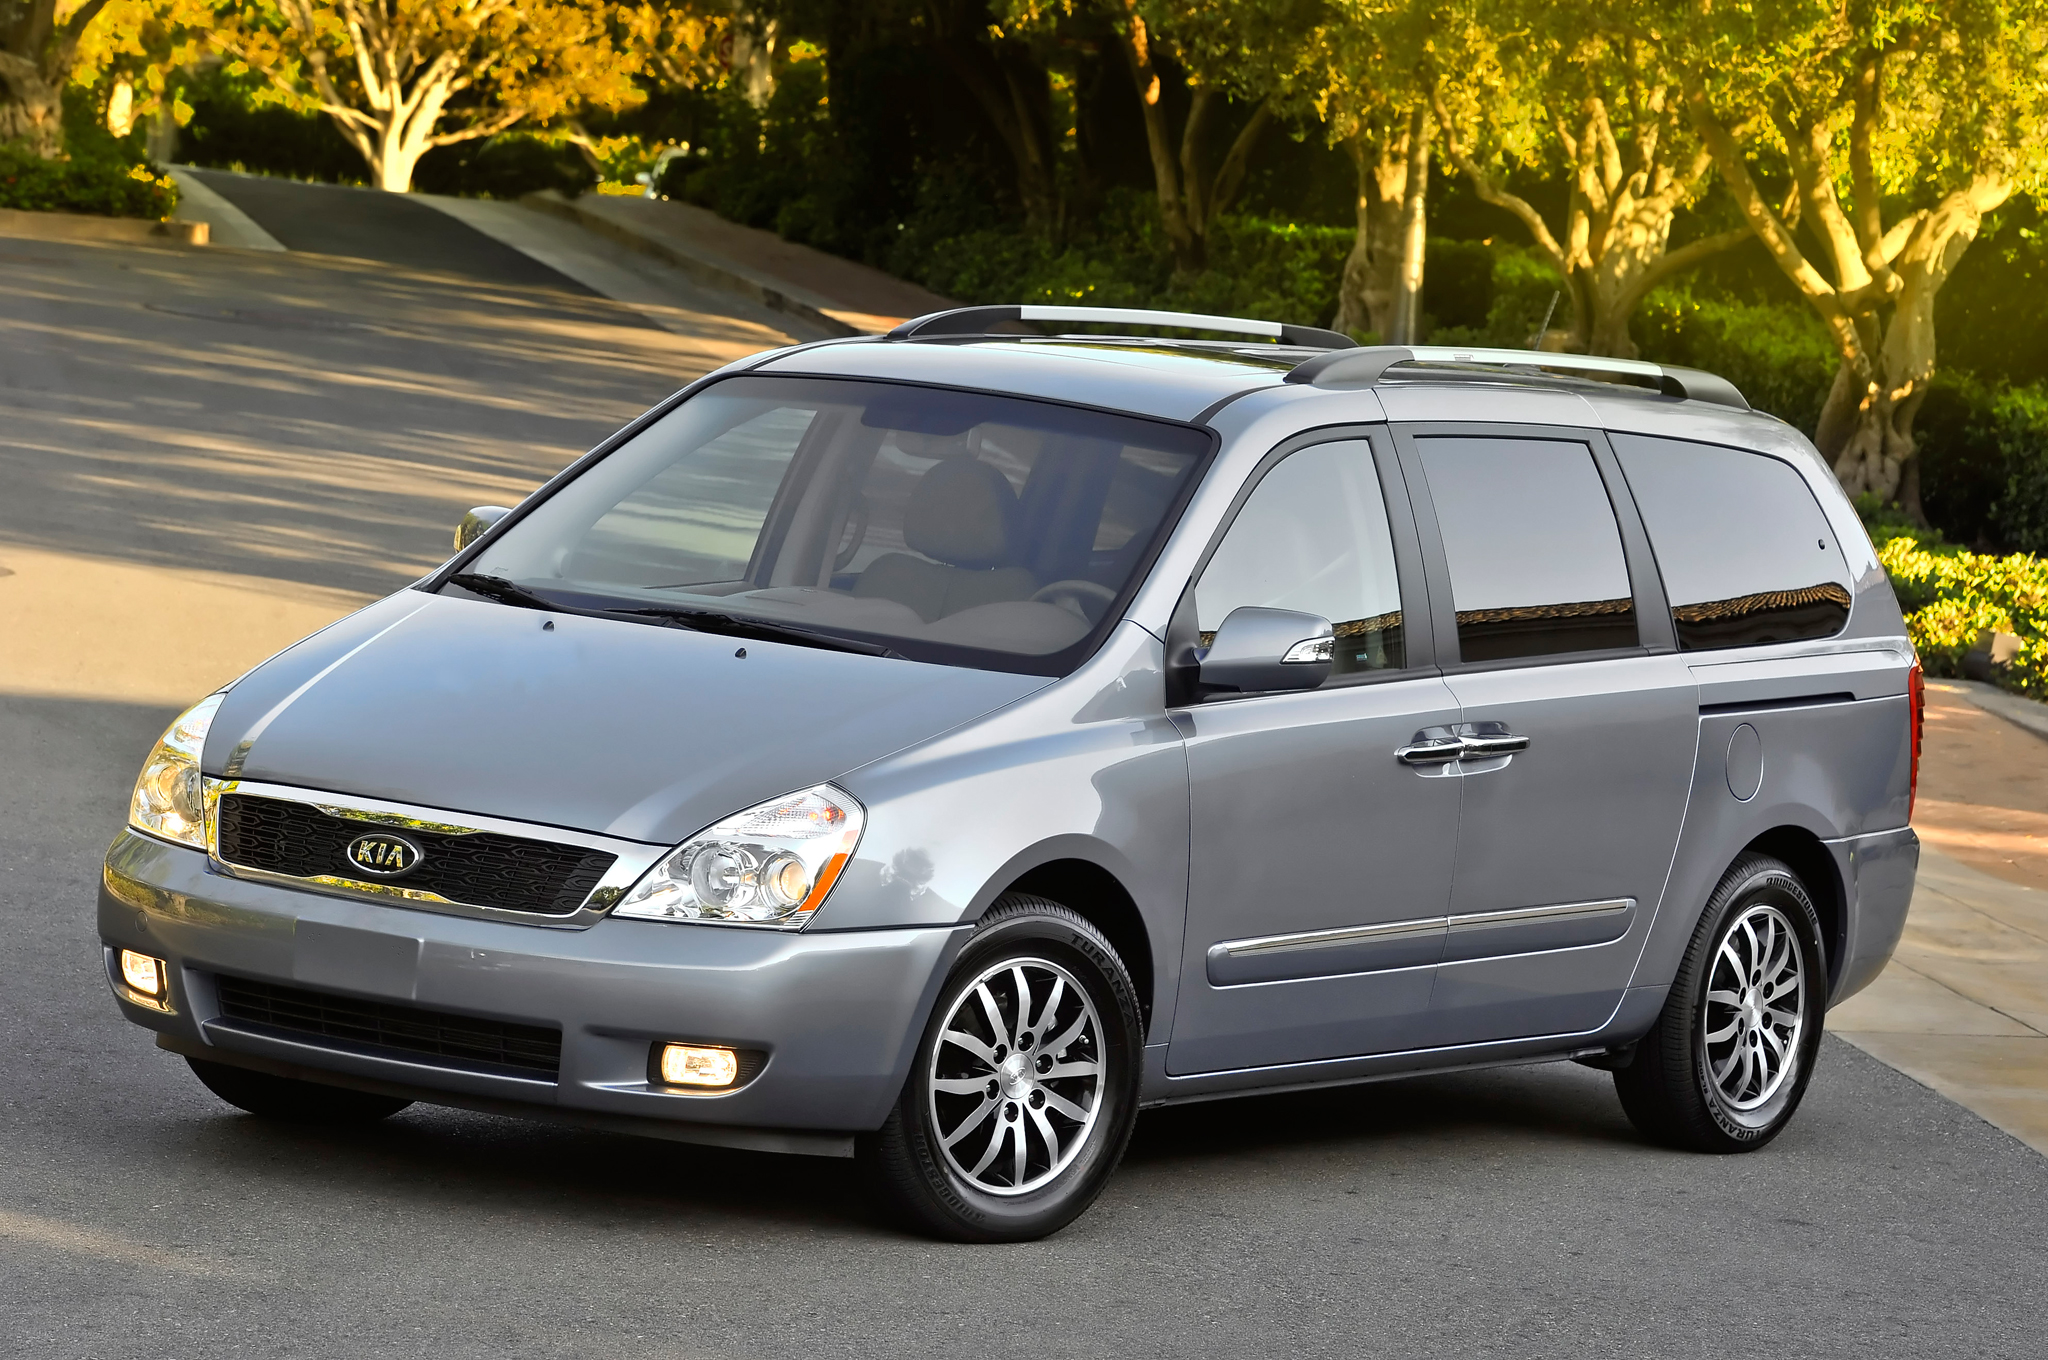 Download all kia sedona 2008 pictures 3 8 mb